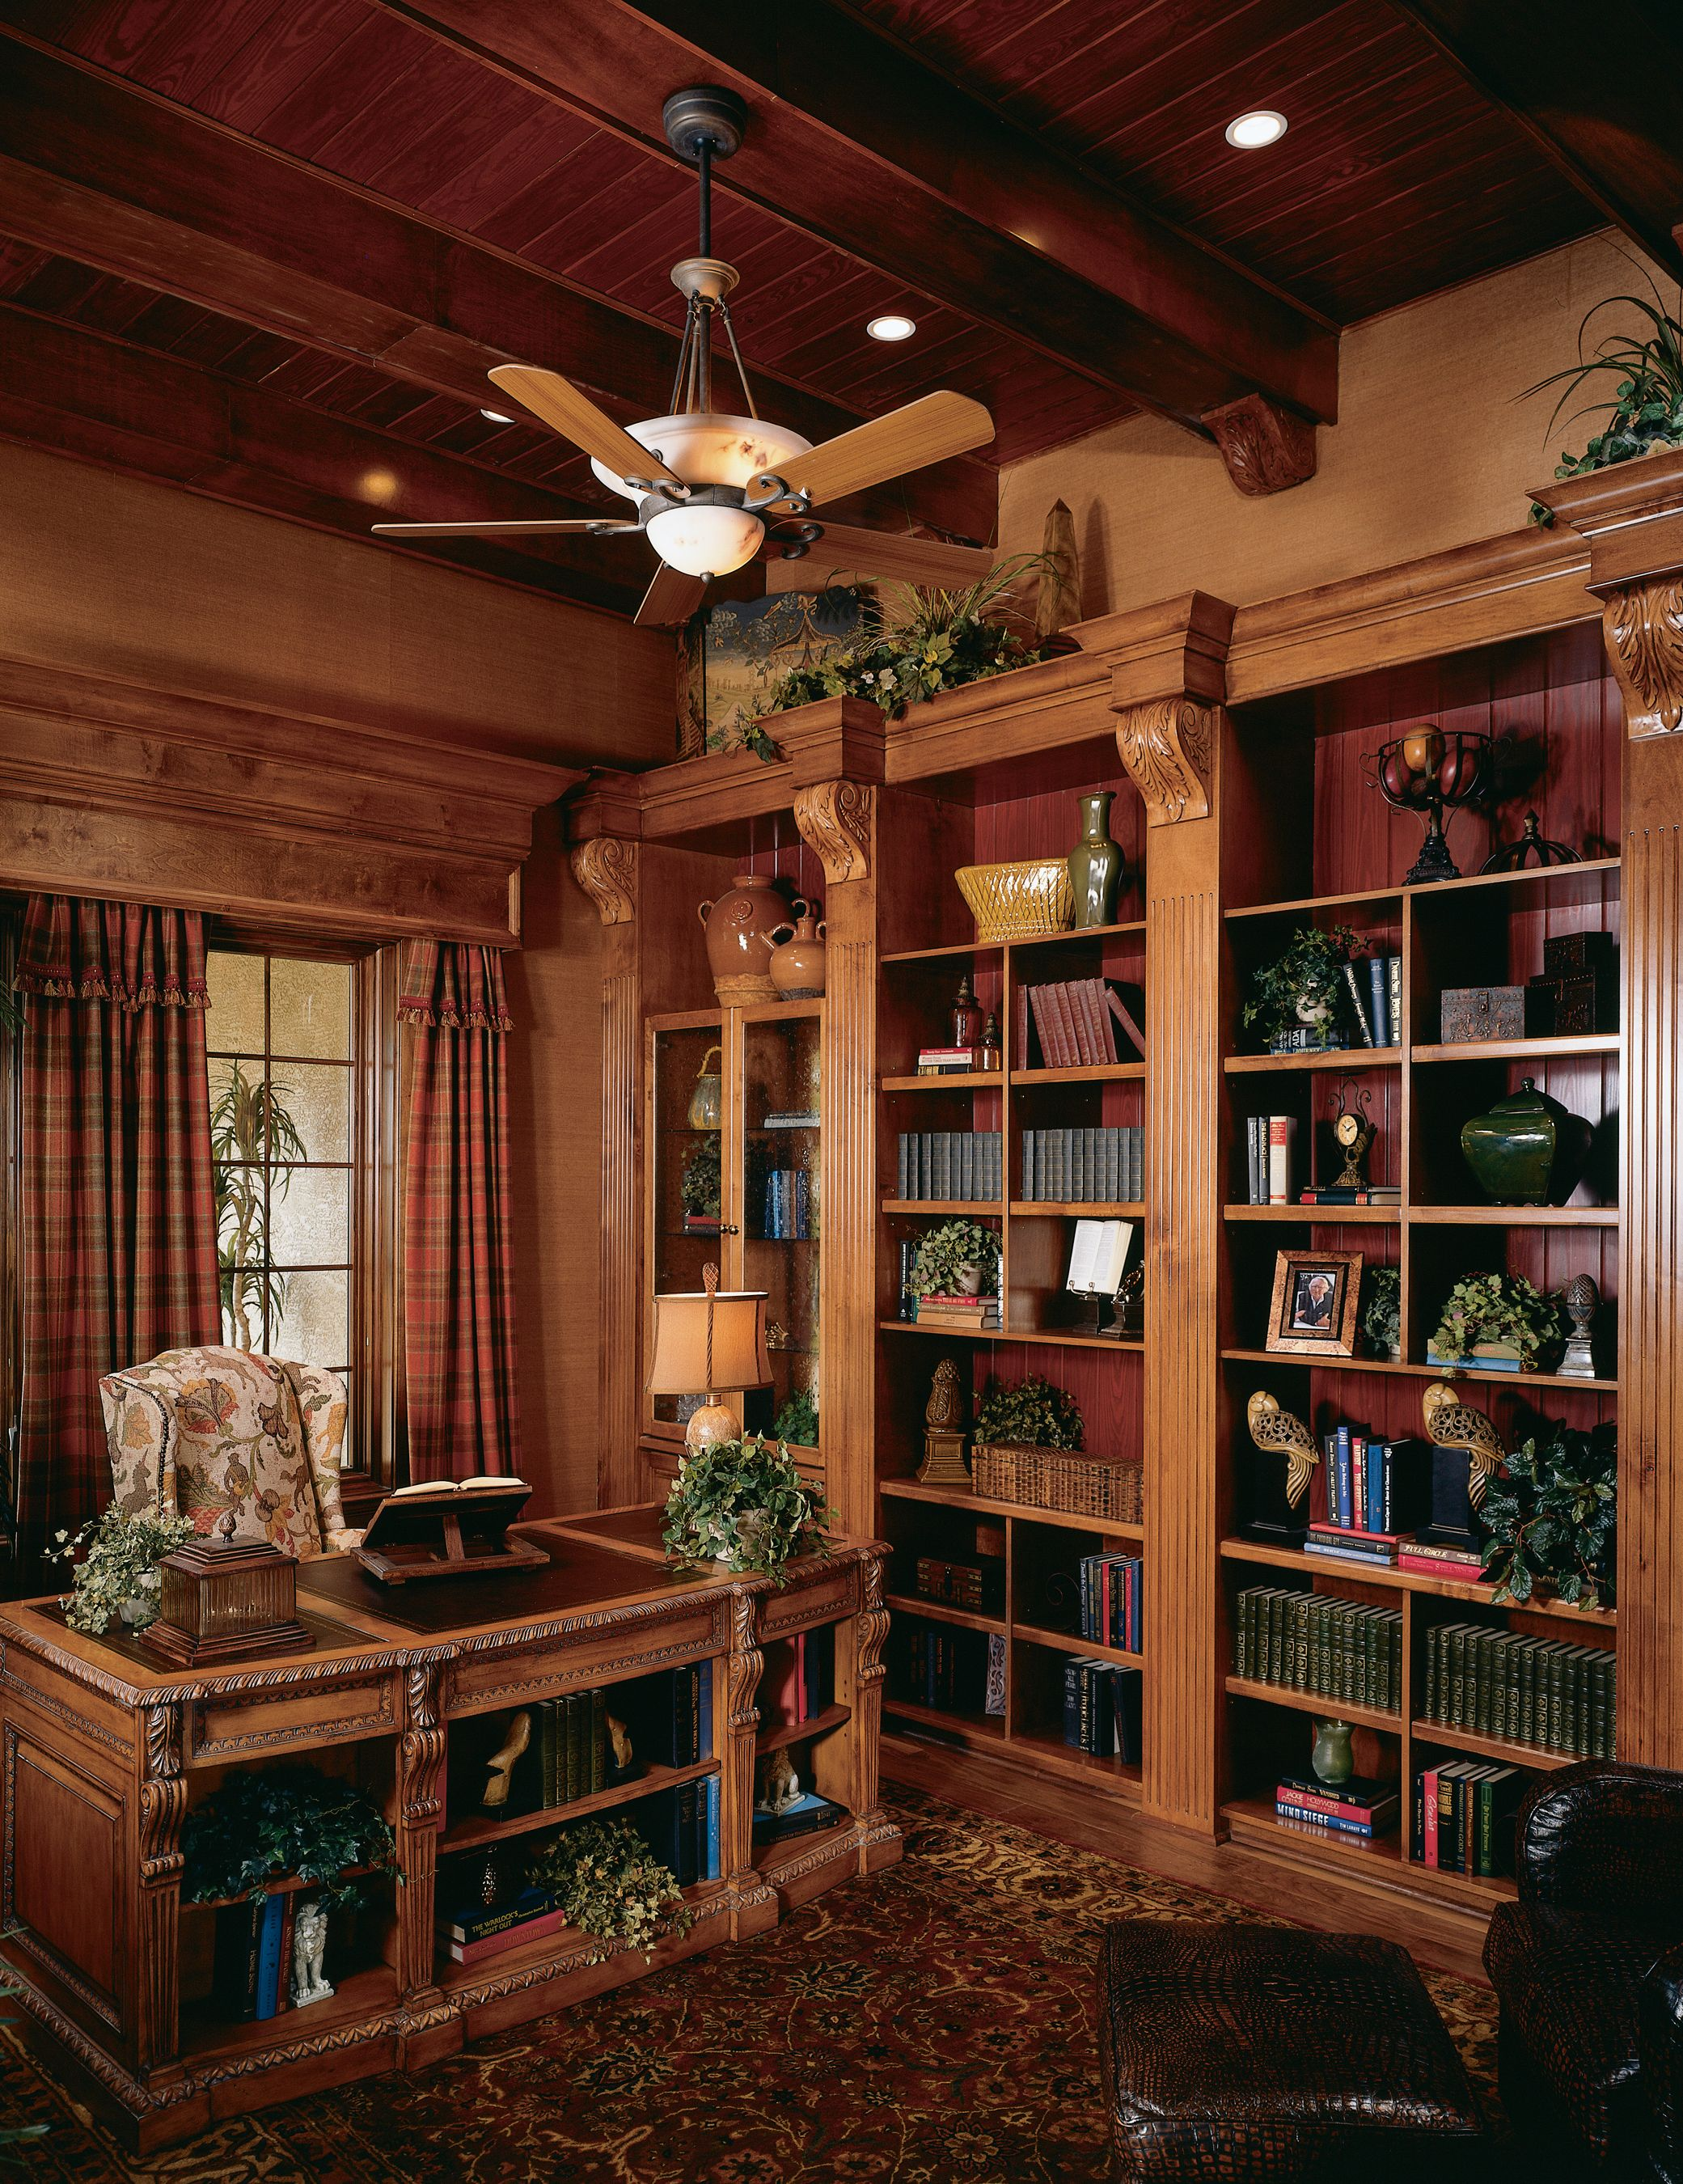 Luxury Home Library Design: Go Old School With A Formal Library In Your Office! This